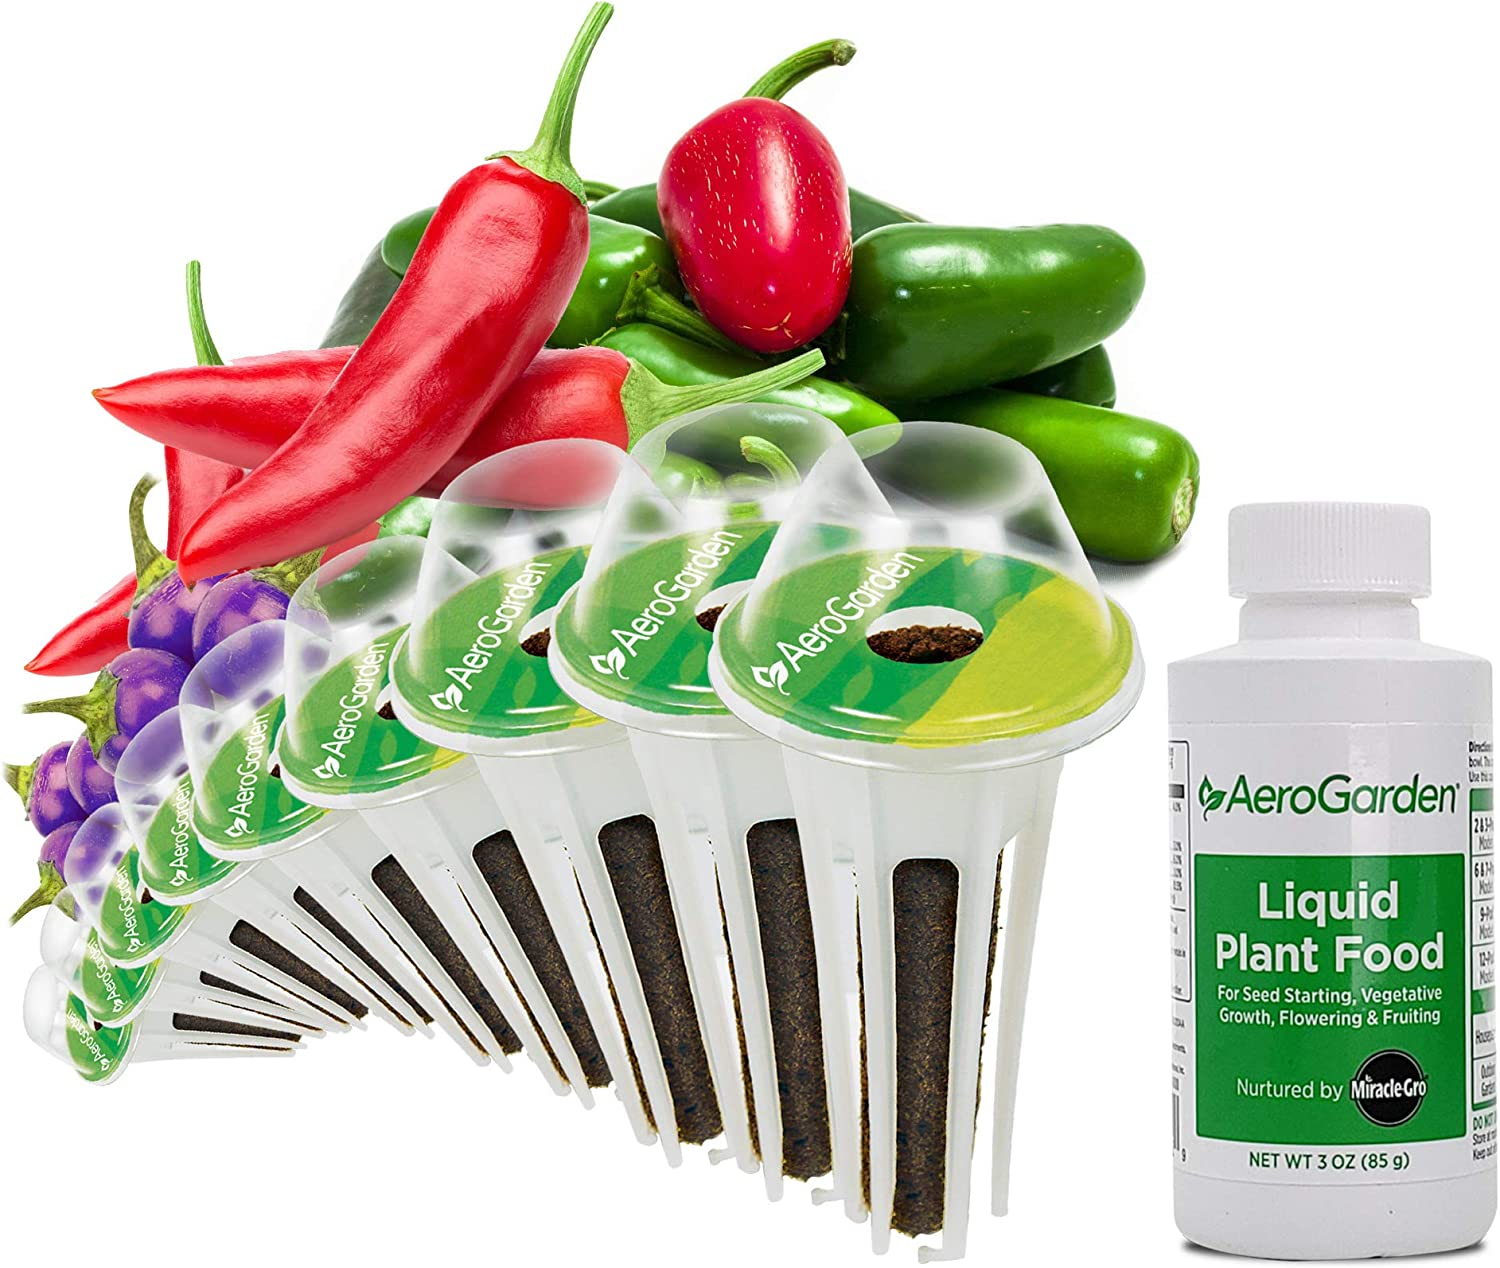 AeroGarden Spicy Chili Pepper Seed Pod Kit, 9